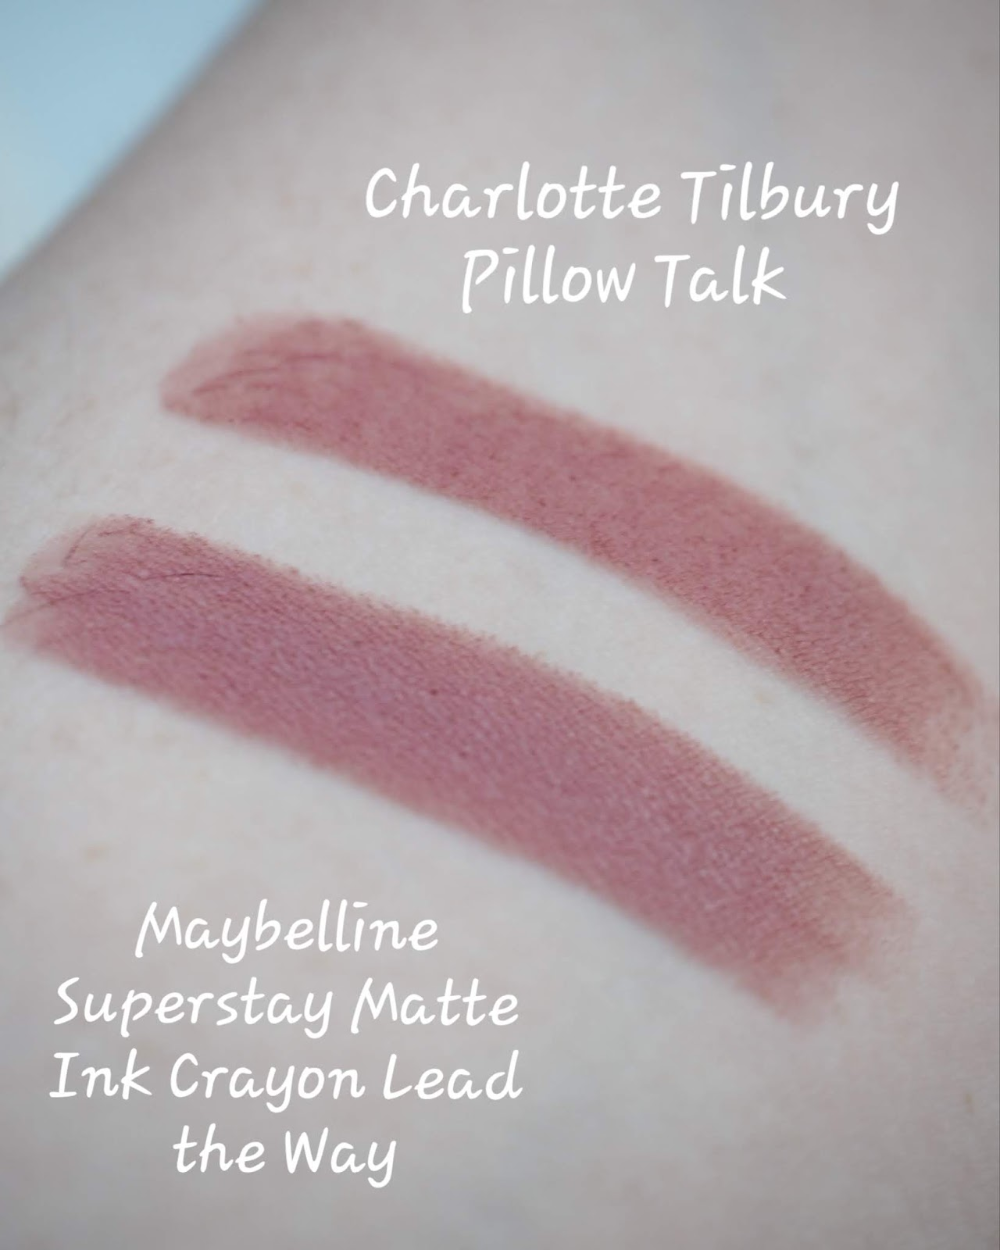 Charlotte Tilbury Pillow Talk Lipstick Review and Dupe